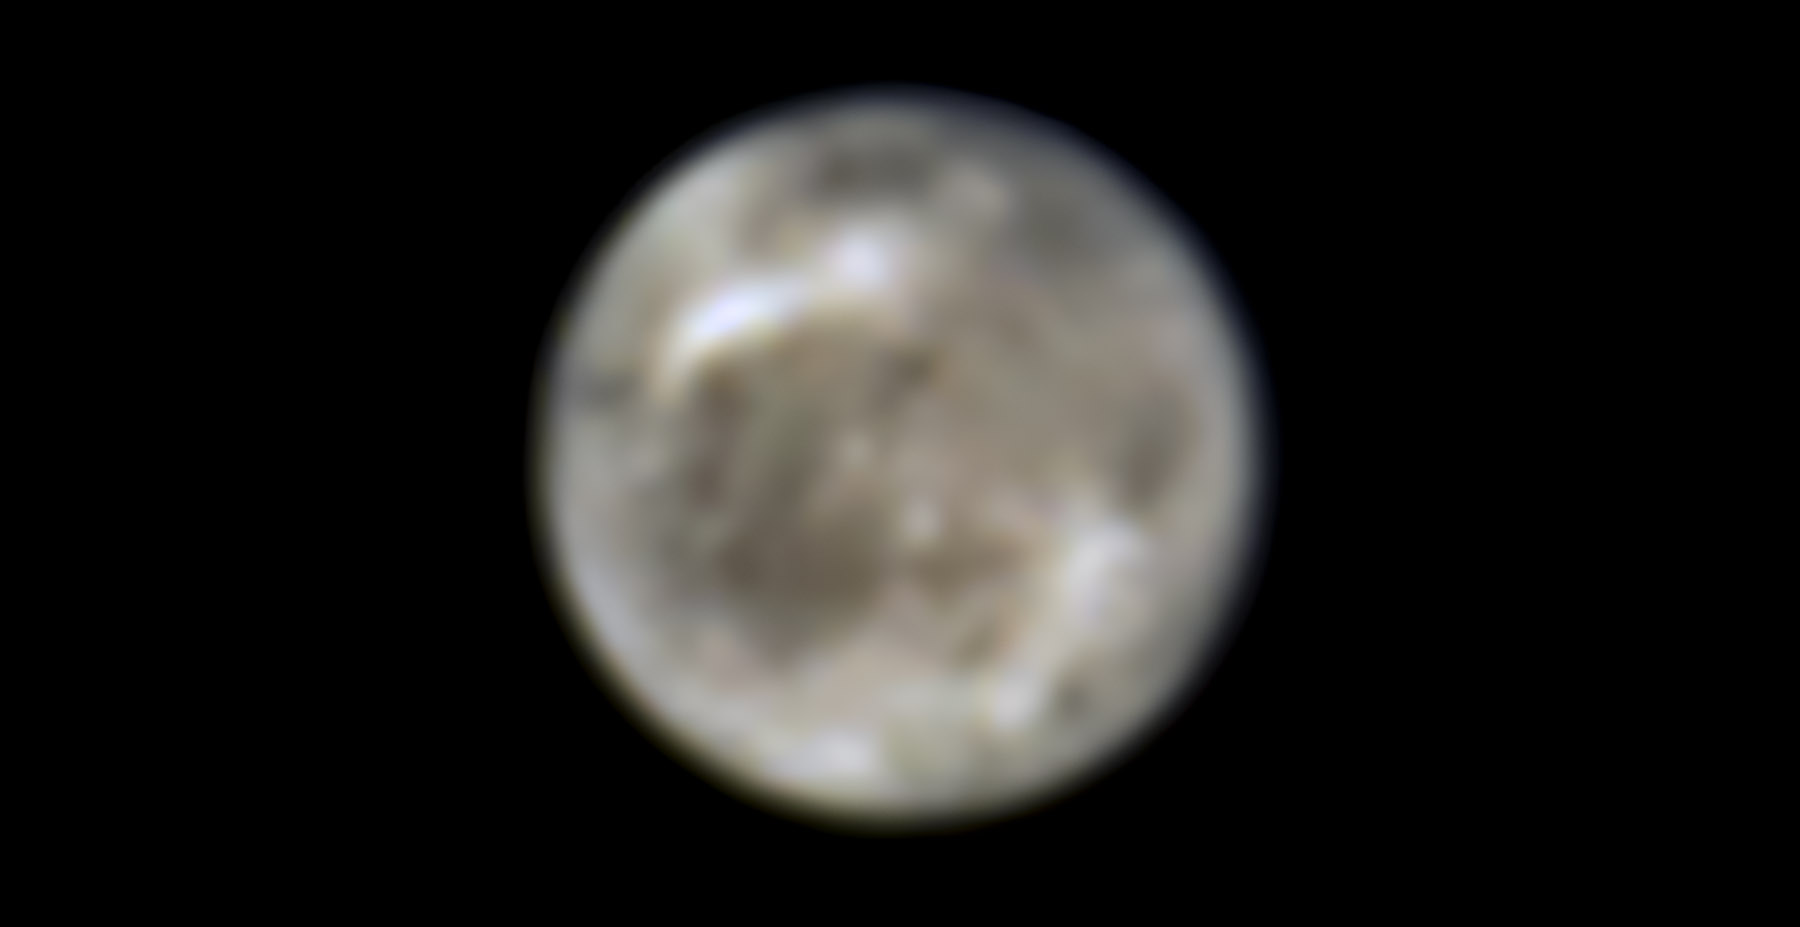 This image presents Jupiter's moon Ganymede as seen by the NASA/ESA Hubble Space Telescope in 1996. Located over 600 million kilometers away, Hubble can follow changes on the moon and reveal other characteristics at ultraviolet and near-infrared wavelengths.